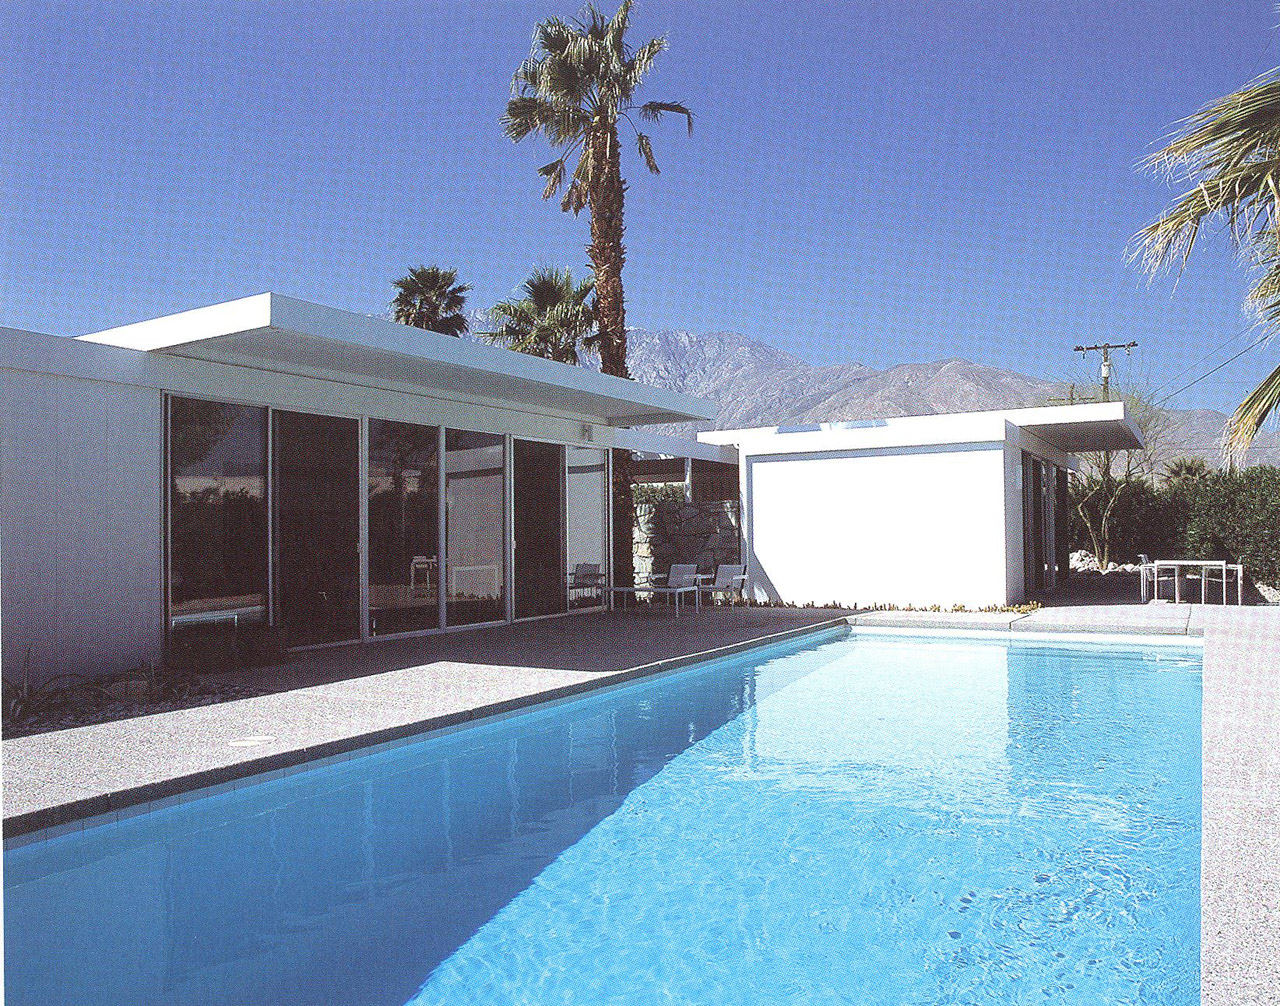 stringio Palm Springs Home Design on john lautner home designs, cypress home designs, seaside home designs, plantation home designs, asheville home designs, outer banks home designs, new orleans home designs, beverly hills home designs, key west home designs, lakeside home designs, santa fe home designs, cape cod home designs, santa barbara home designs, island living home designs, hawaii island home designs, mountain view home designs, california home designs, lake tahoe home designs, san miguel de allende home designs, atlanta home designs,